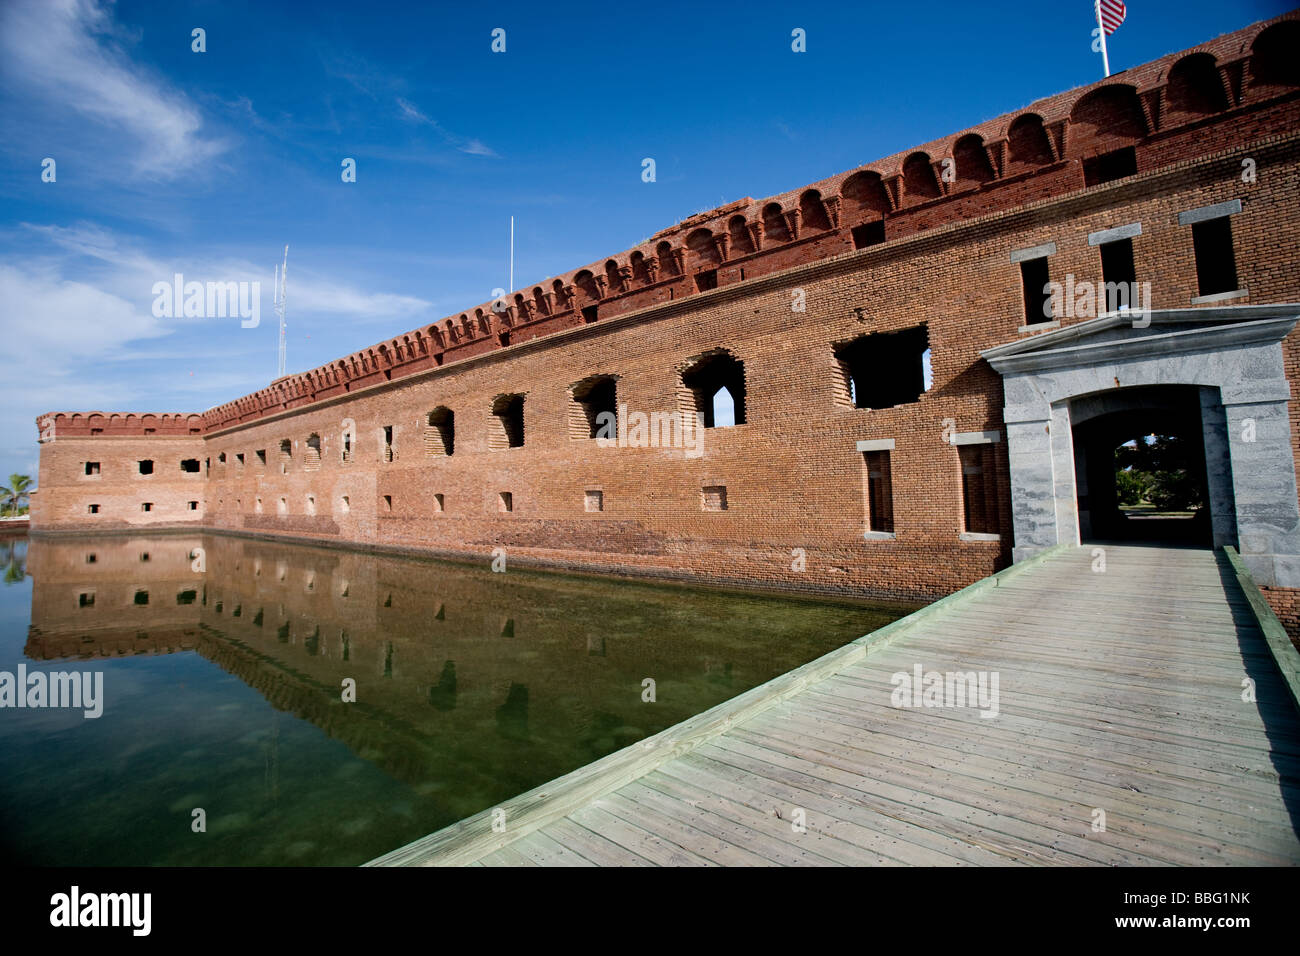 Entrance to Ft. Jefferson. - Stock Image